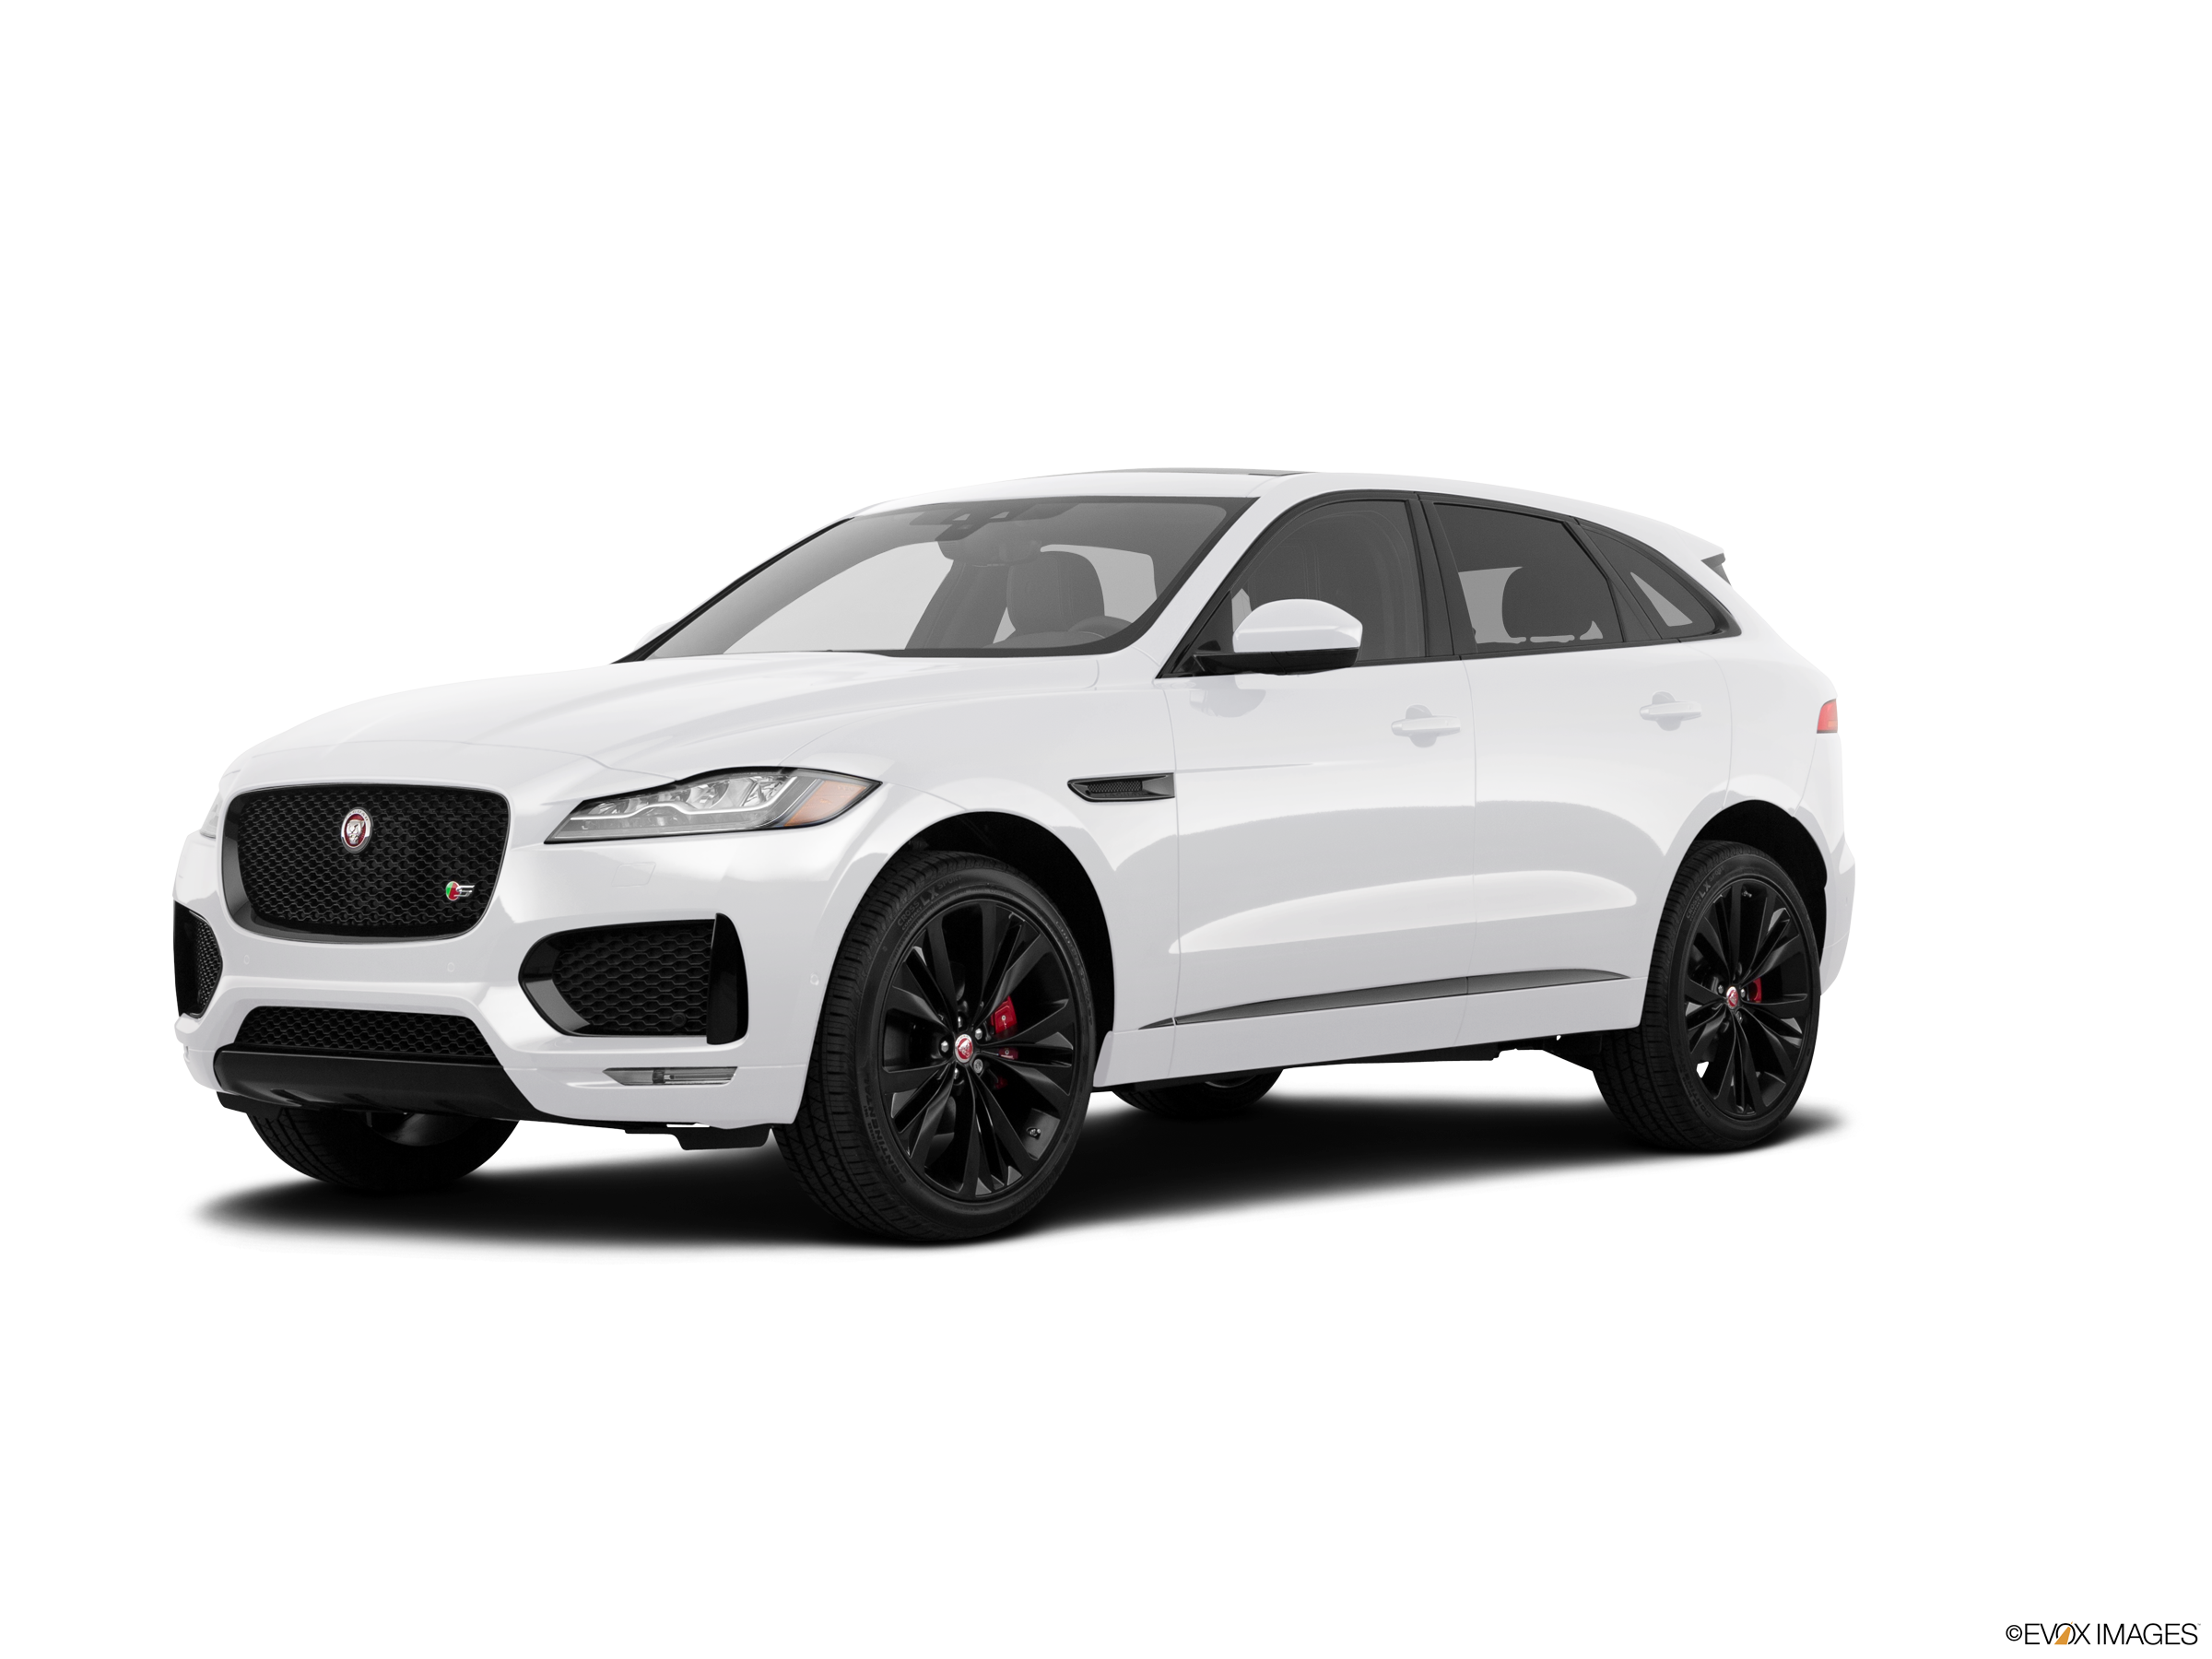 Highest Horsepower Luxury Vehicles of 2019 - 2019 Jaguar F-PACE